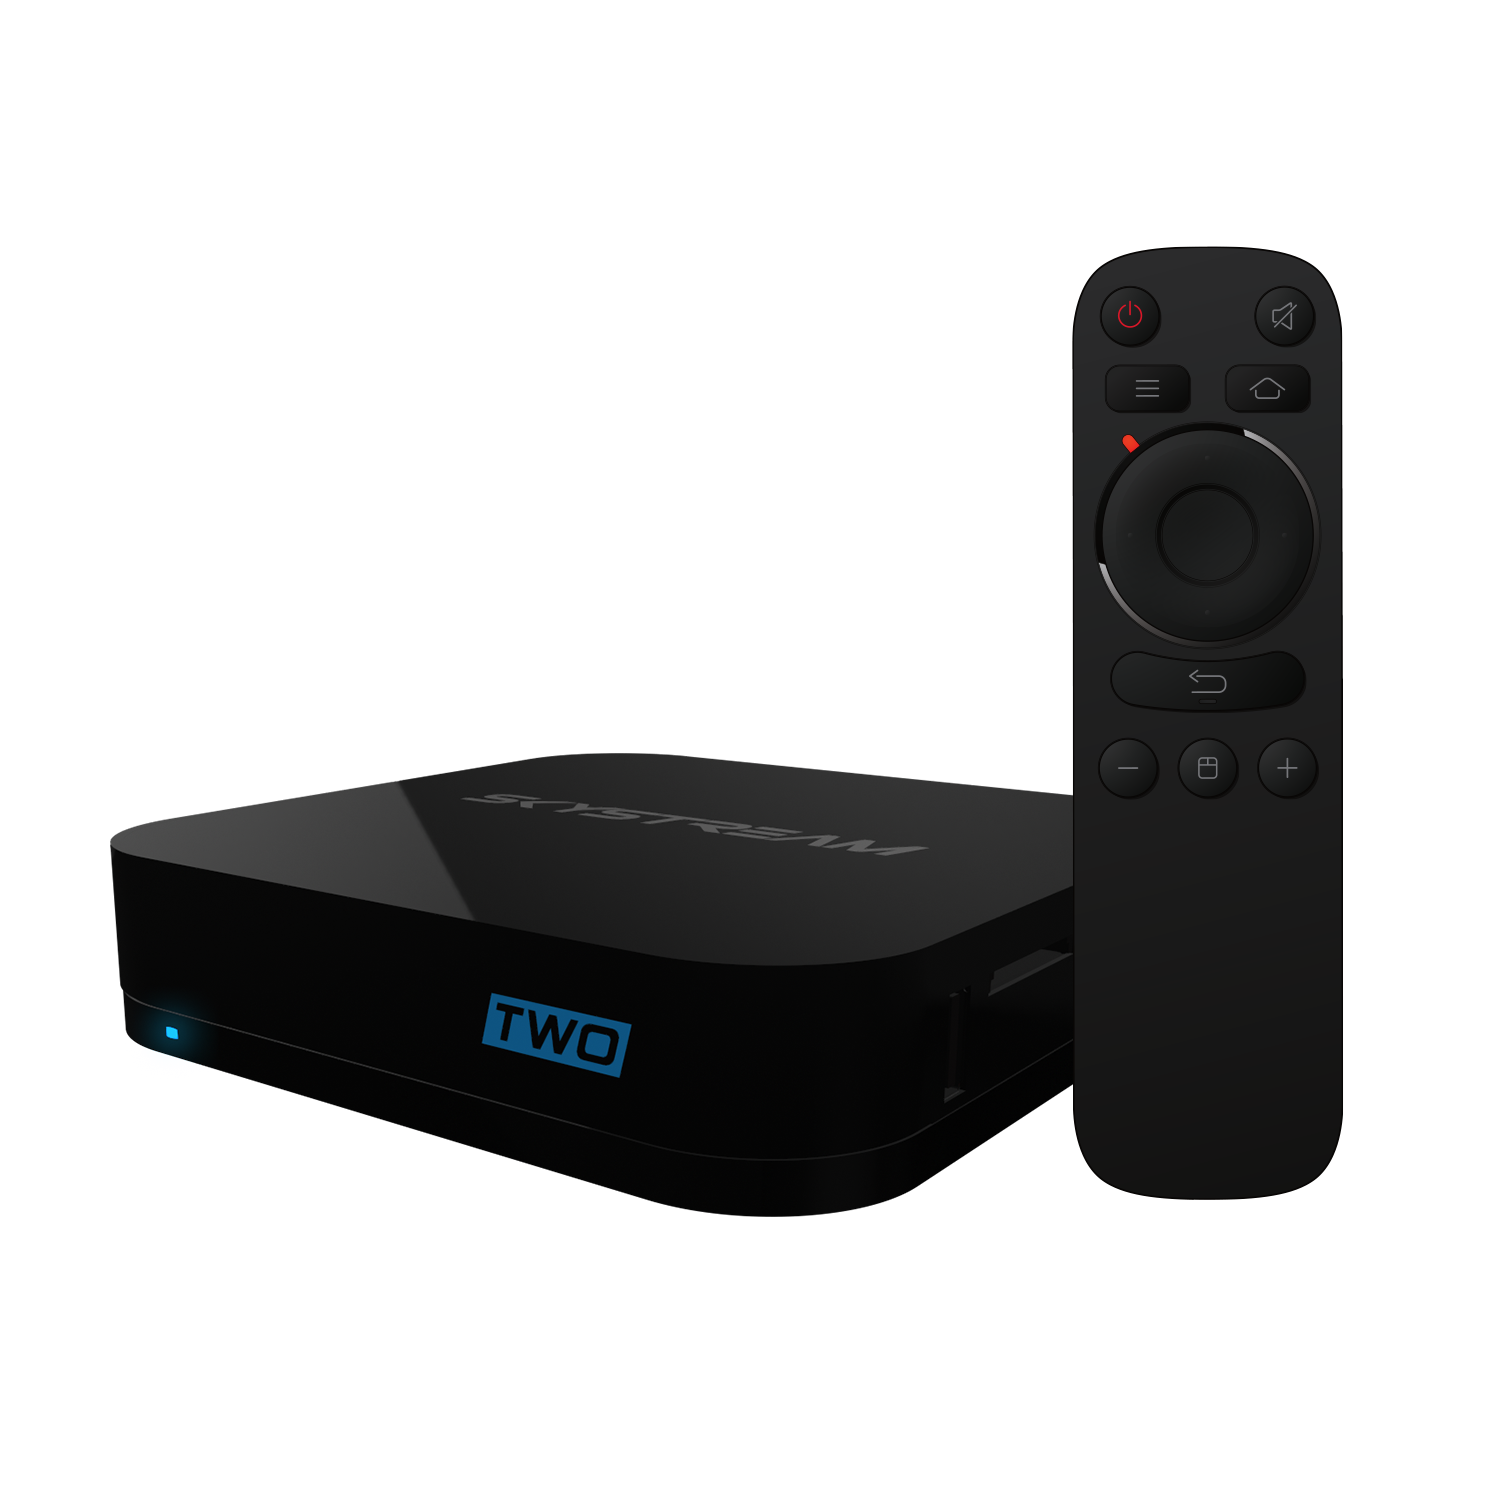 SkyStream Two kodi box